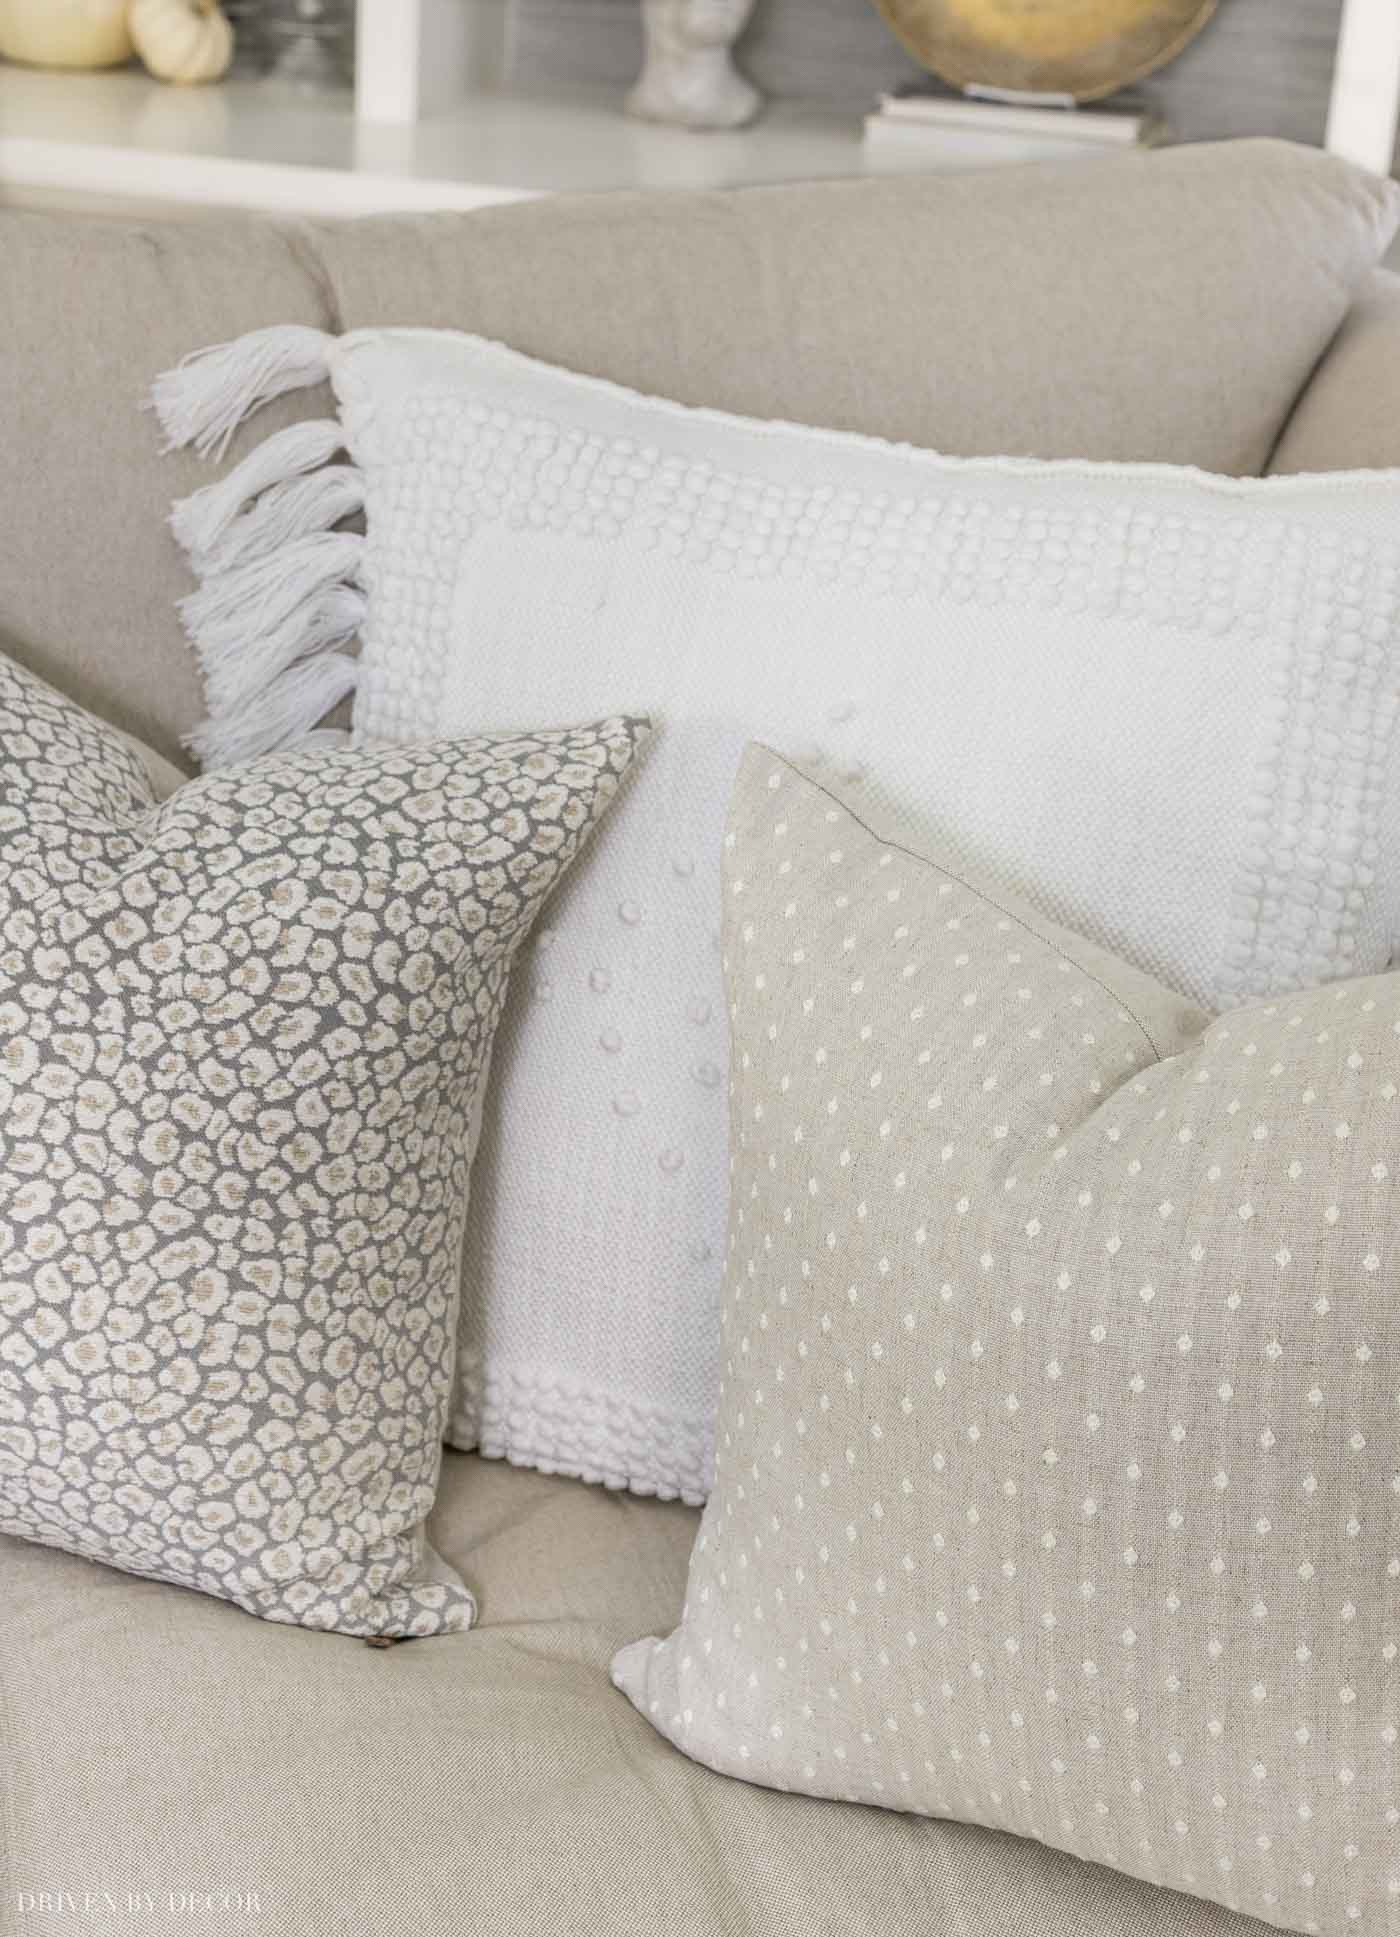 The trio of fall pillows on the corner of our sectional - love!